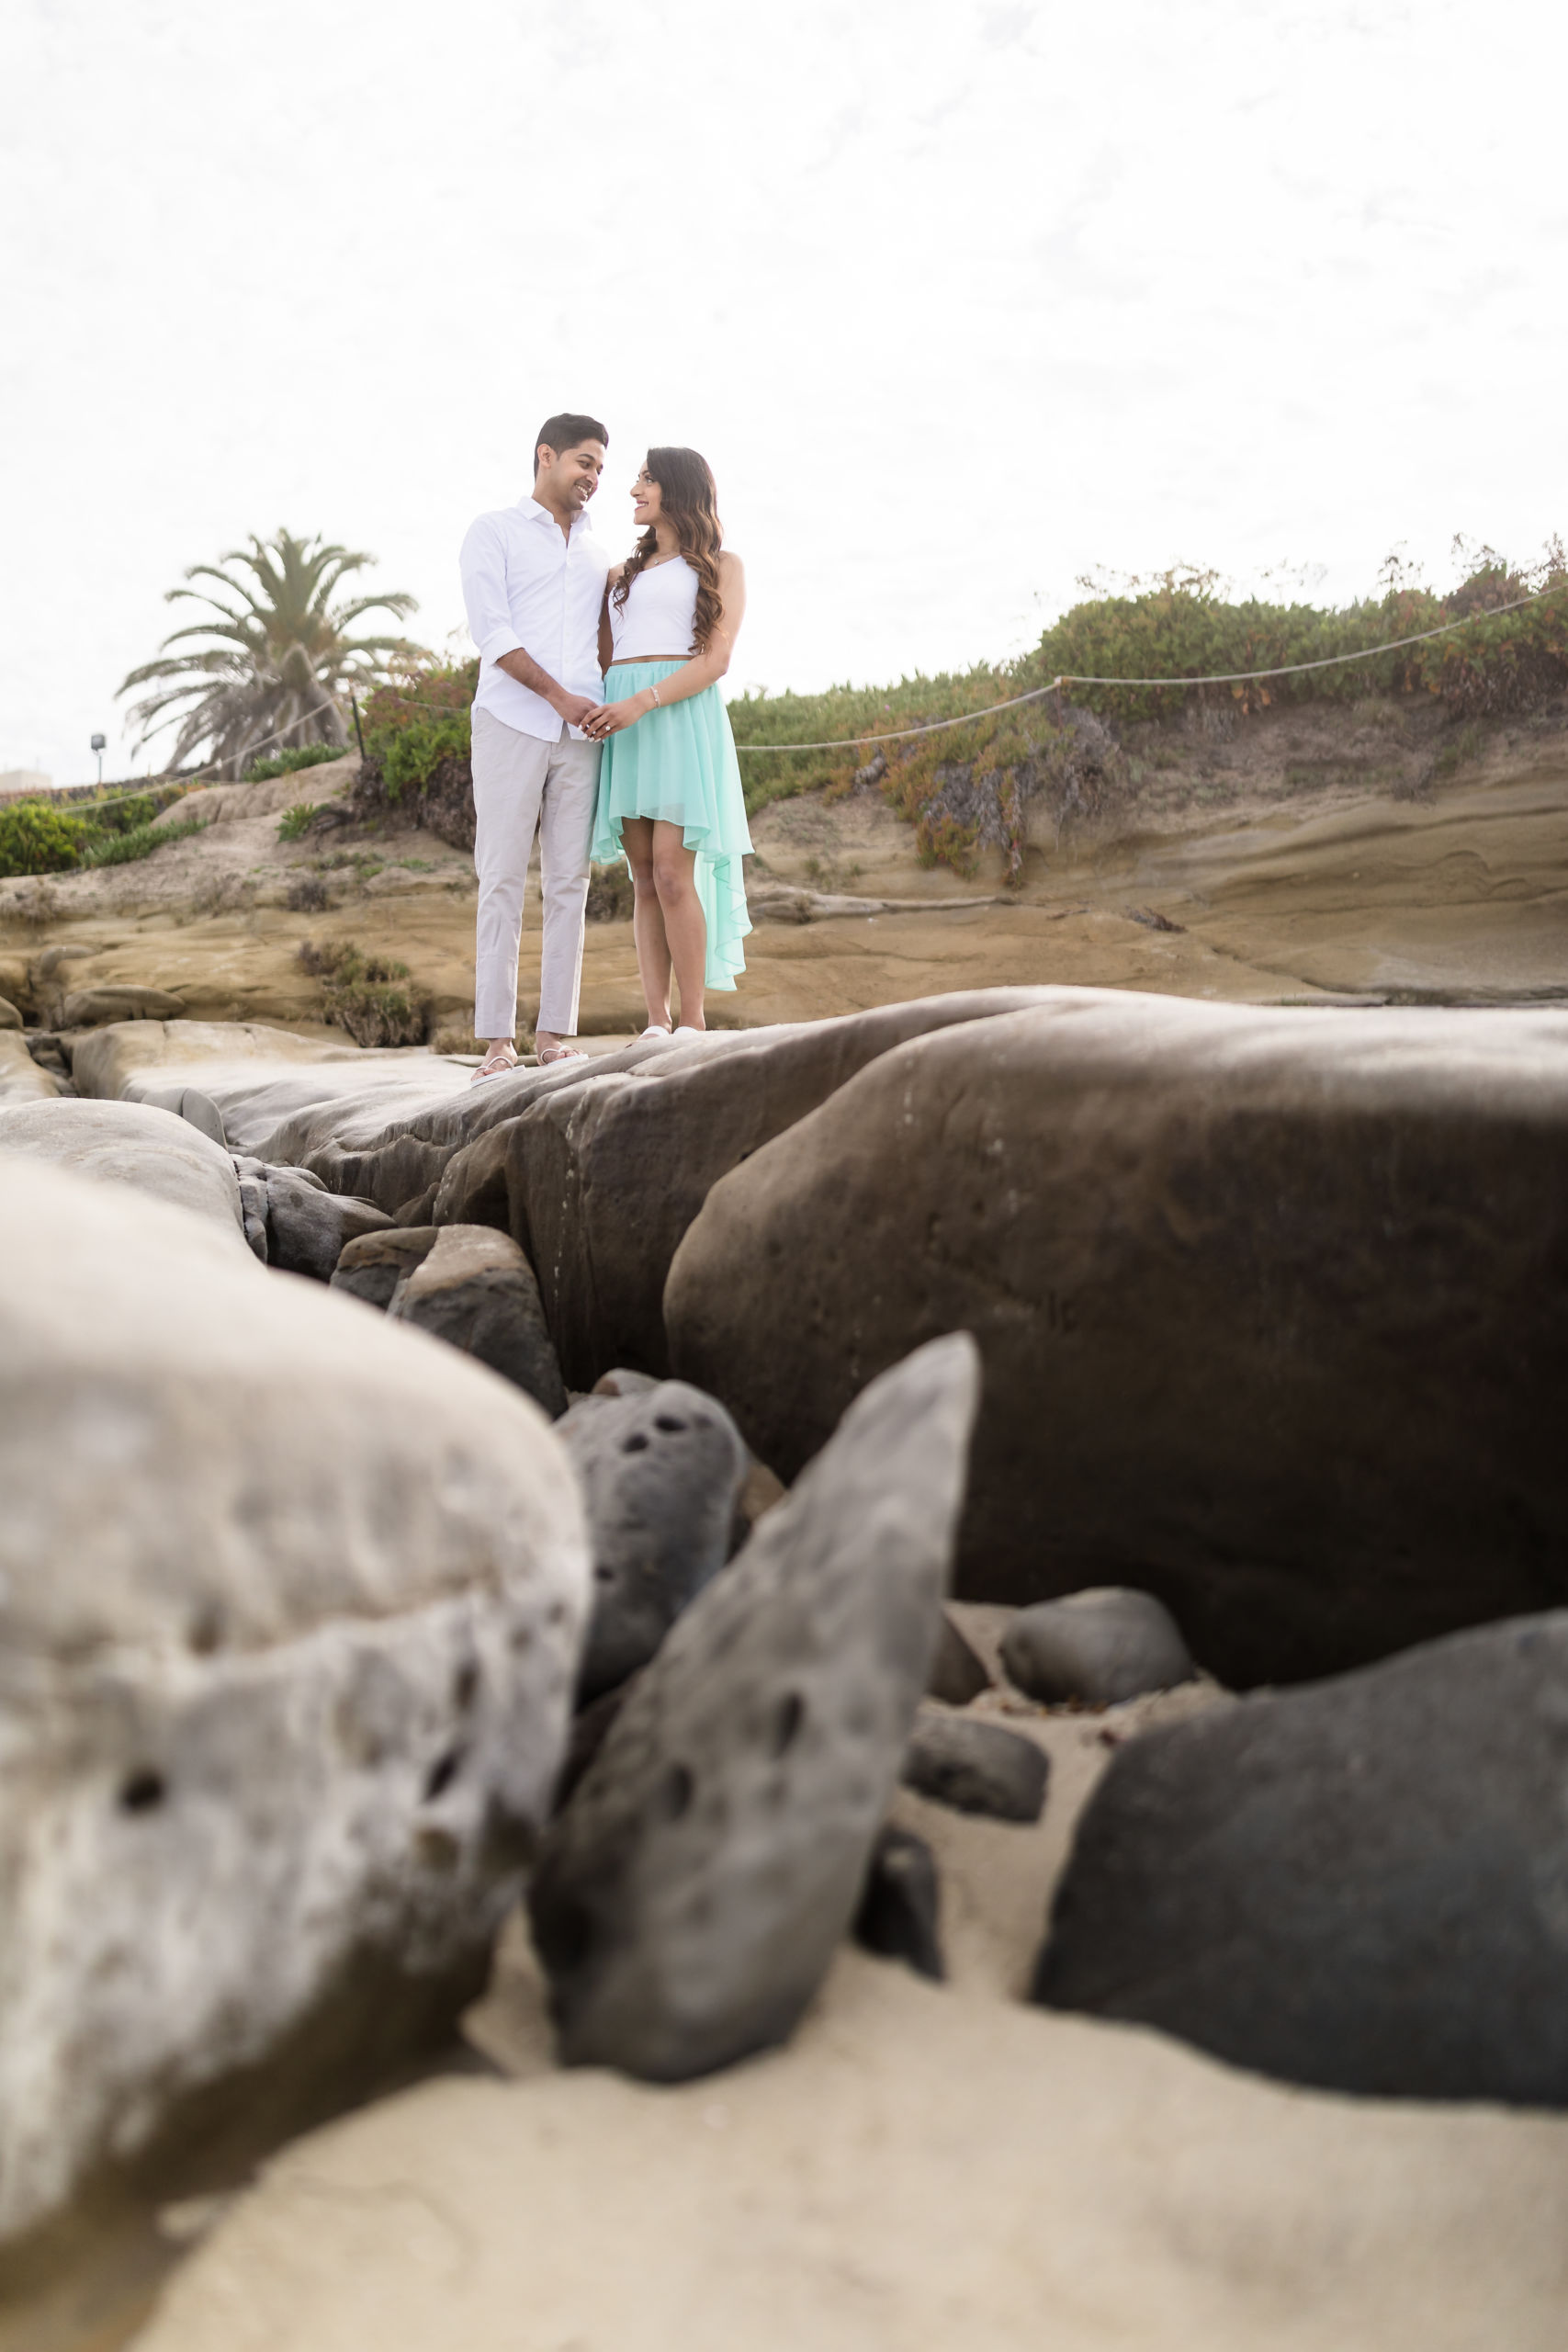 0054 PD La Jolla Cove San Diego County Engagement Photography